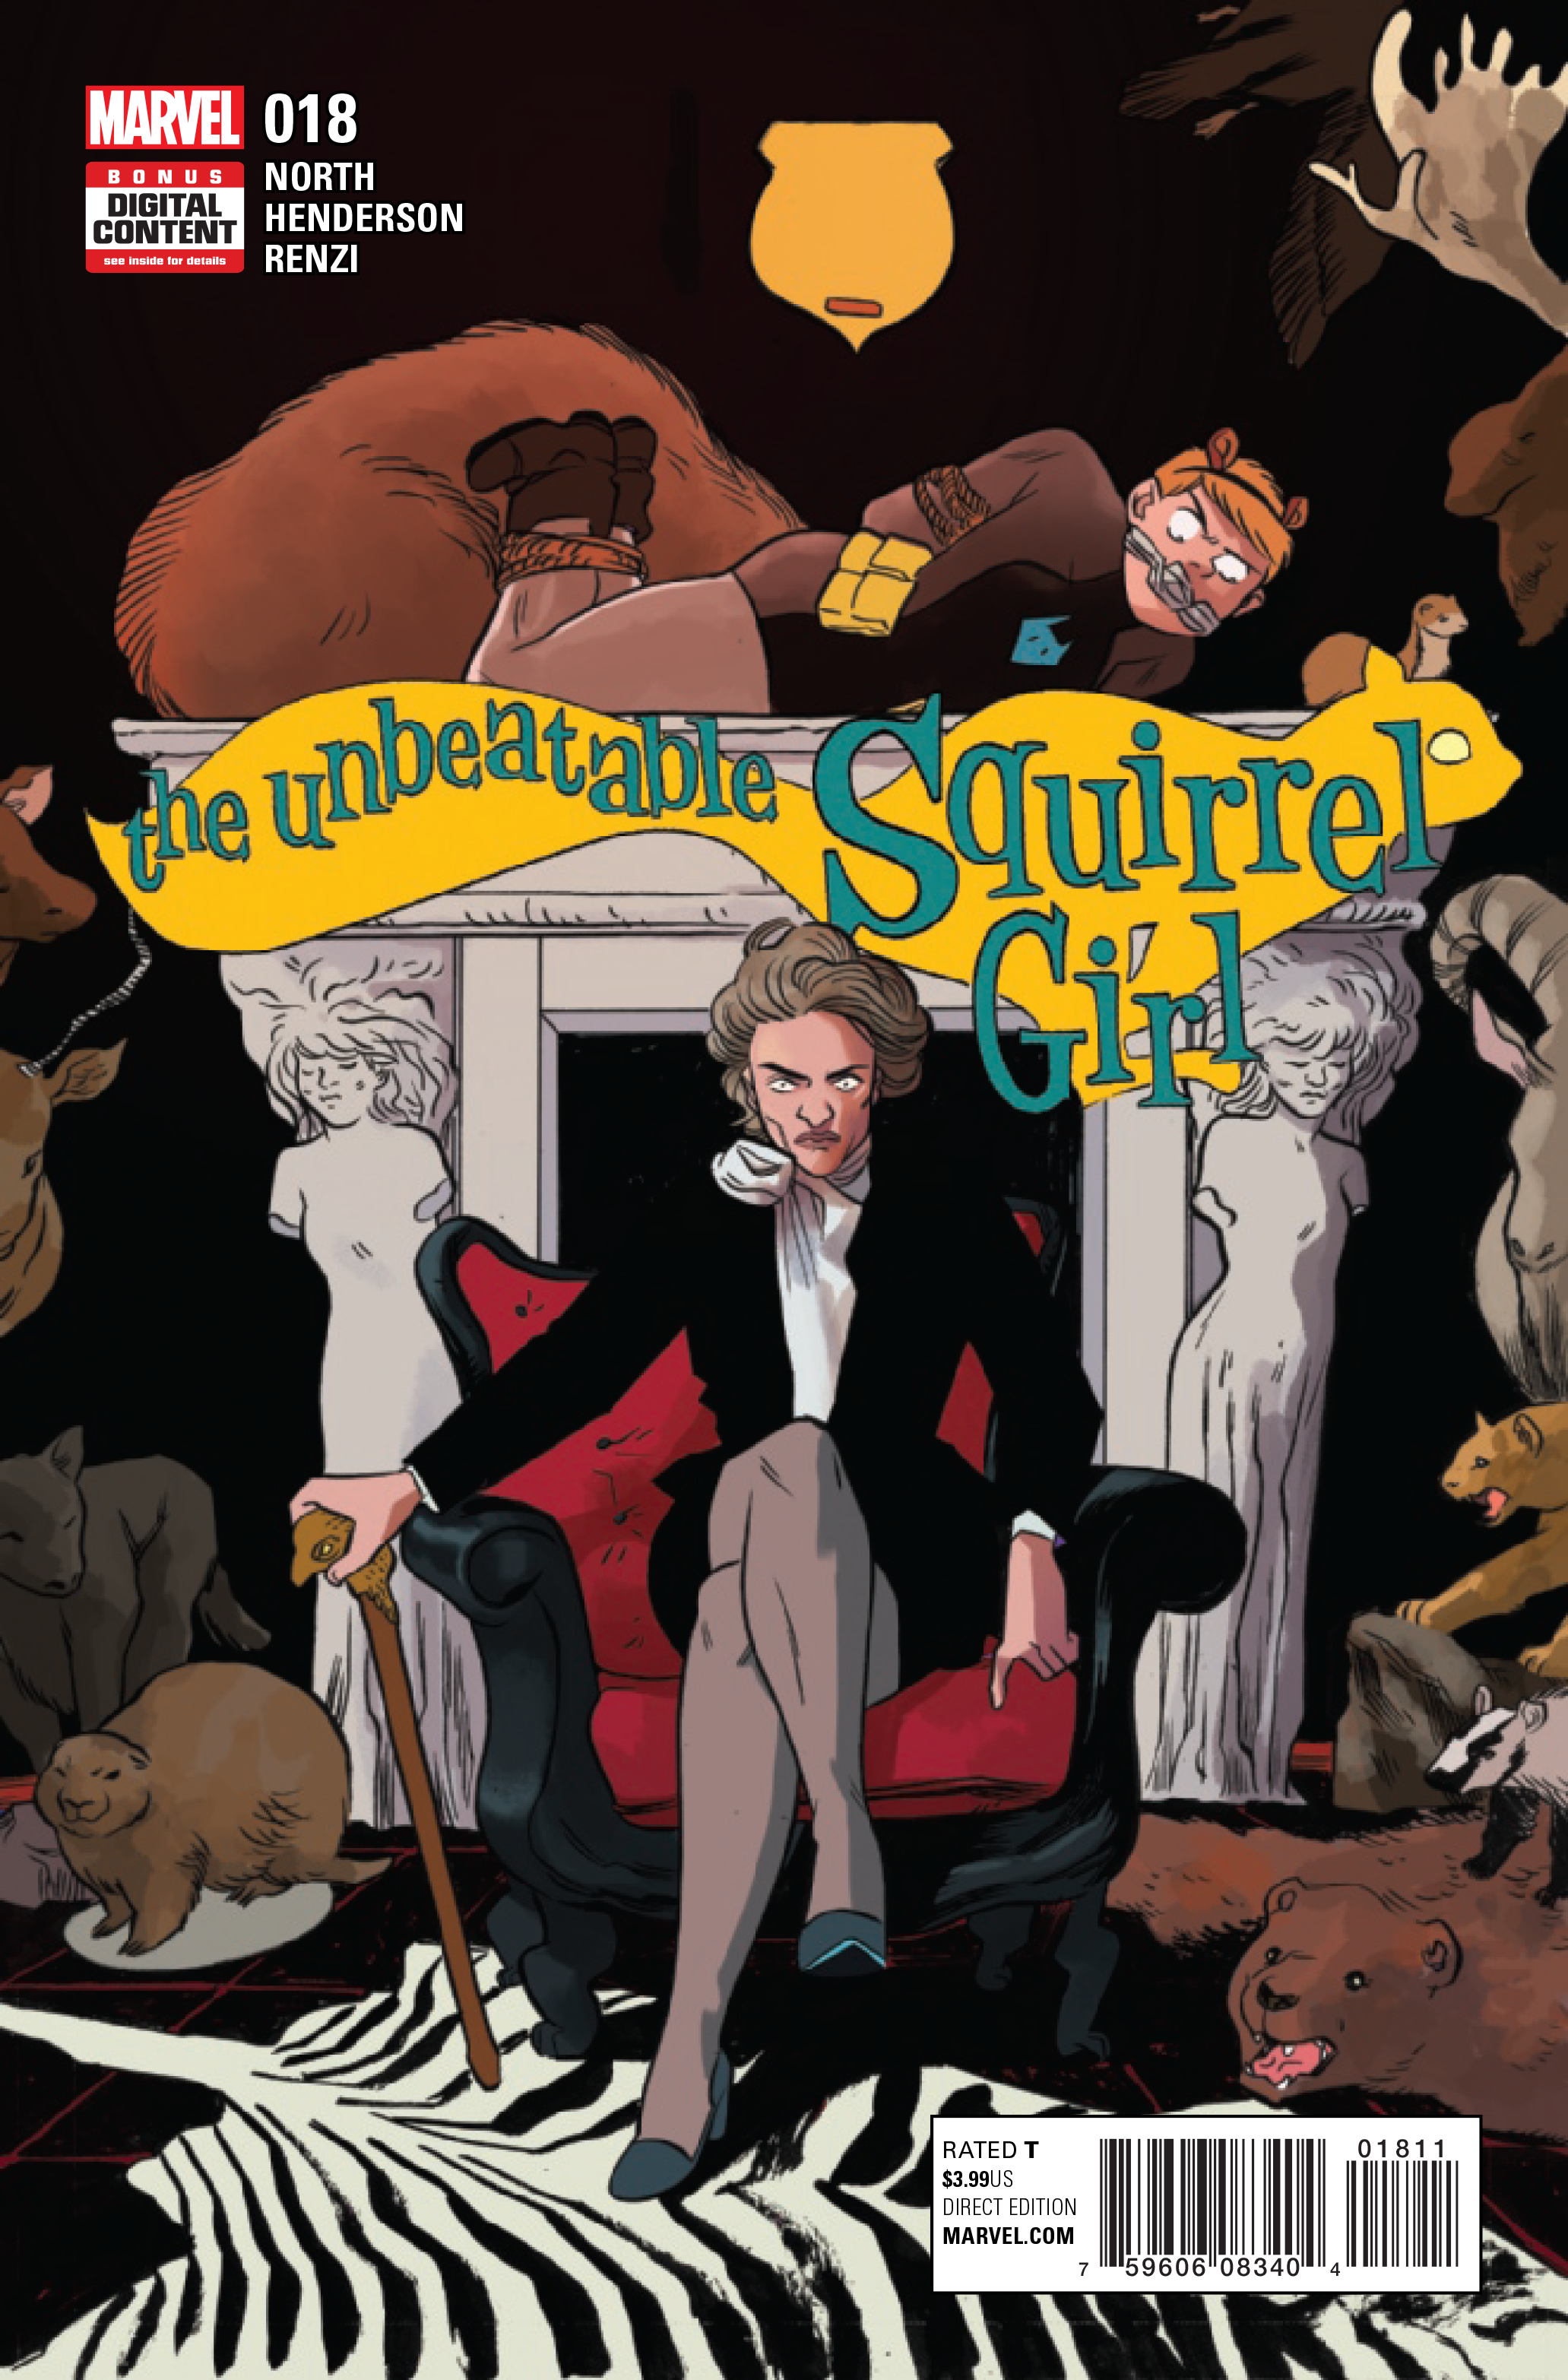 UNBEATABLE SQUIRREL GIRL #18